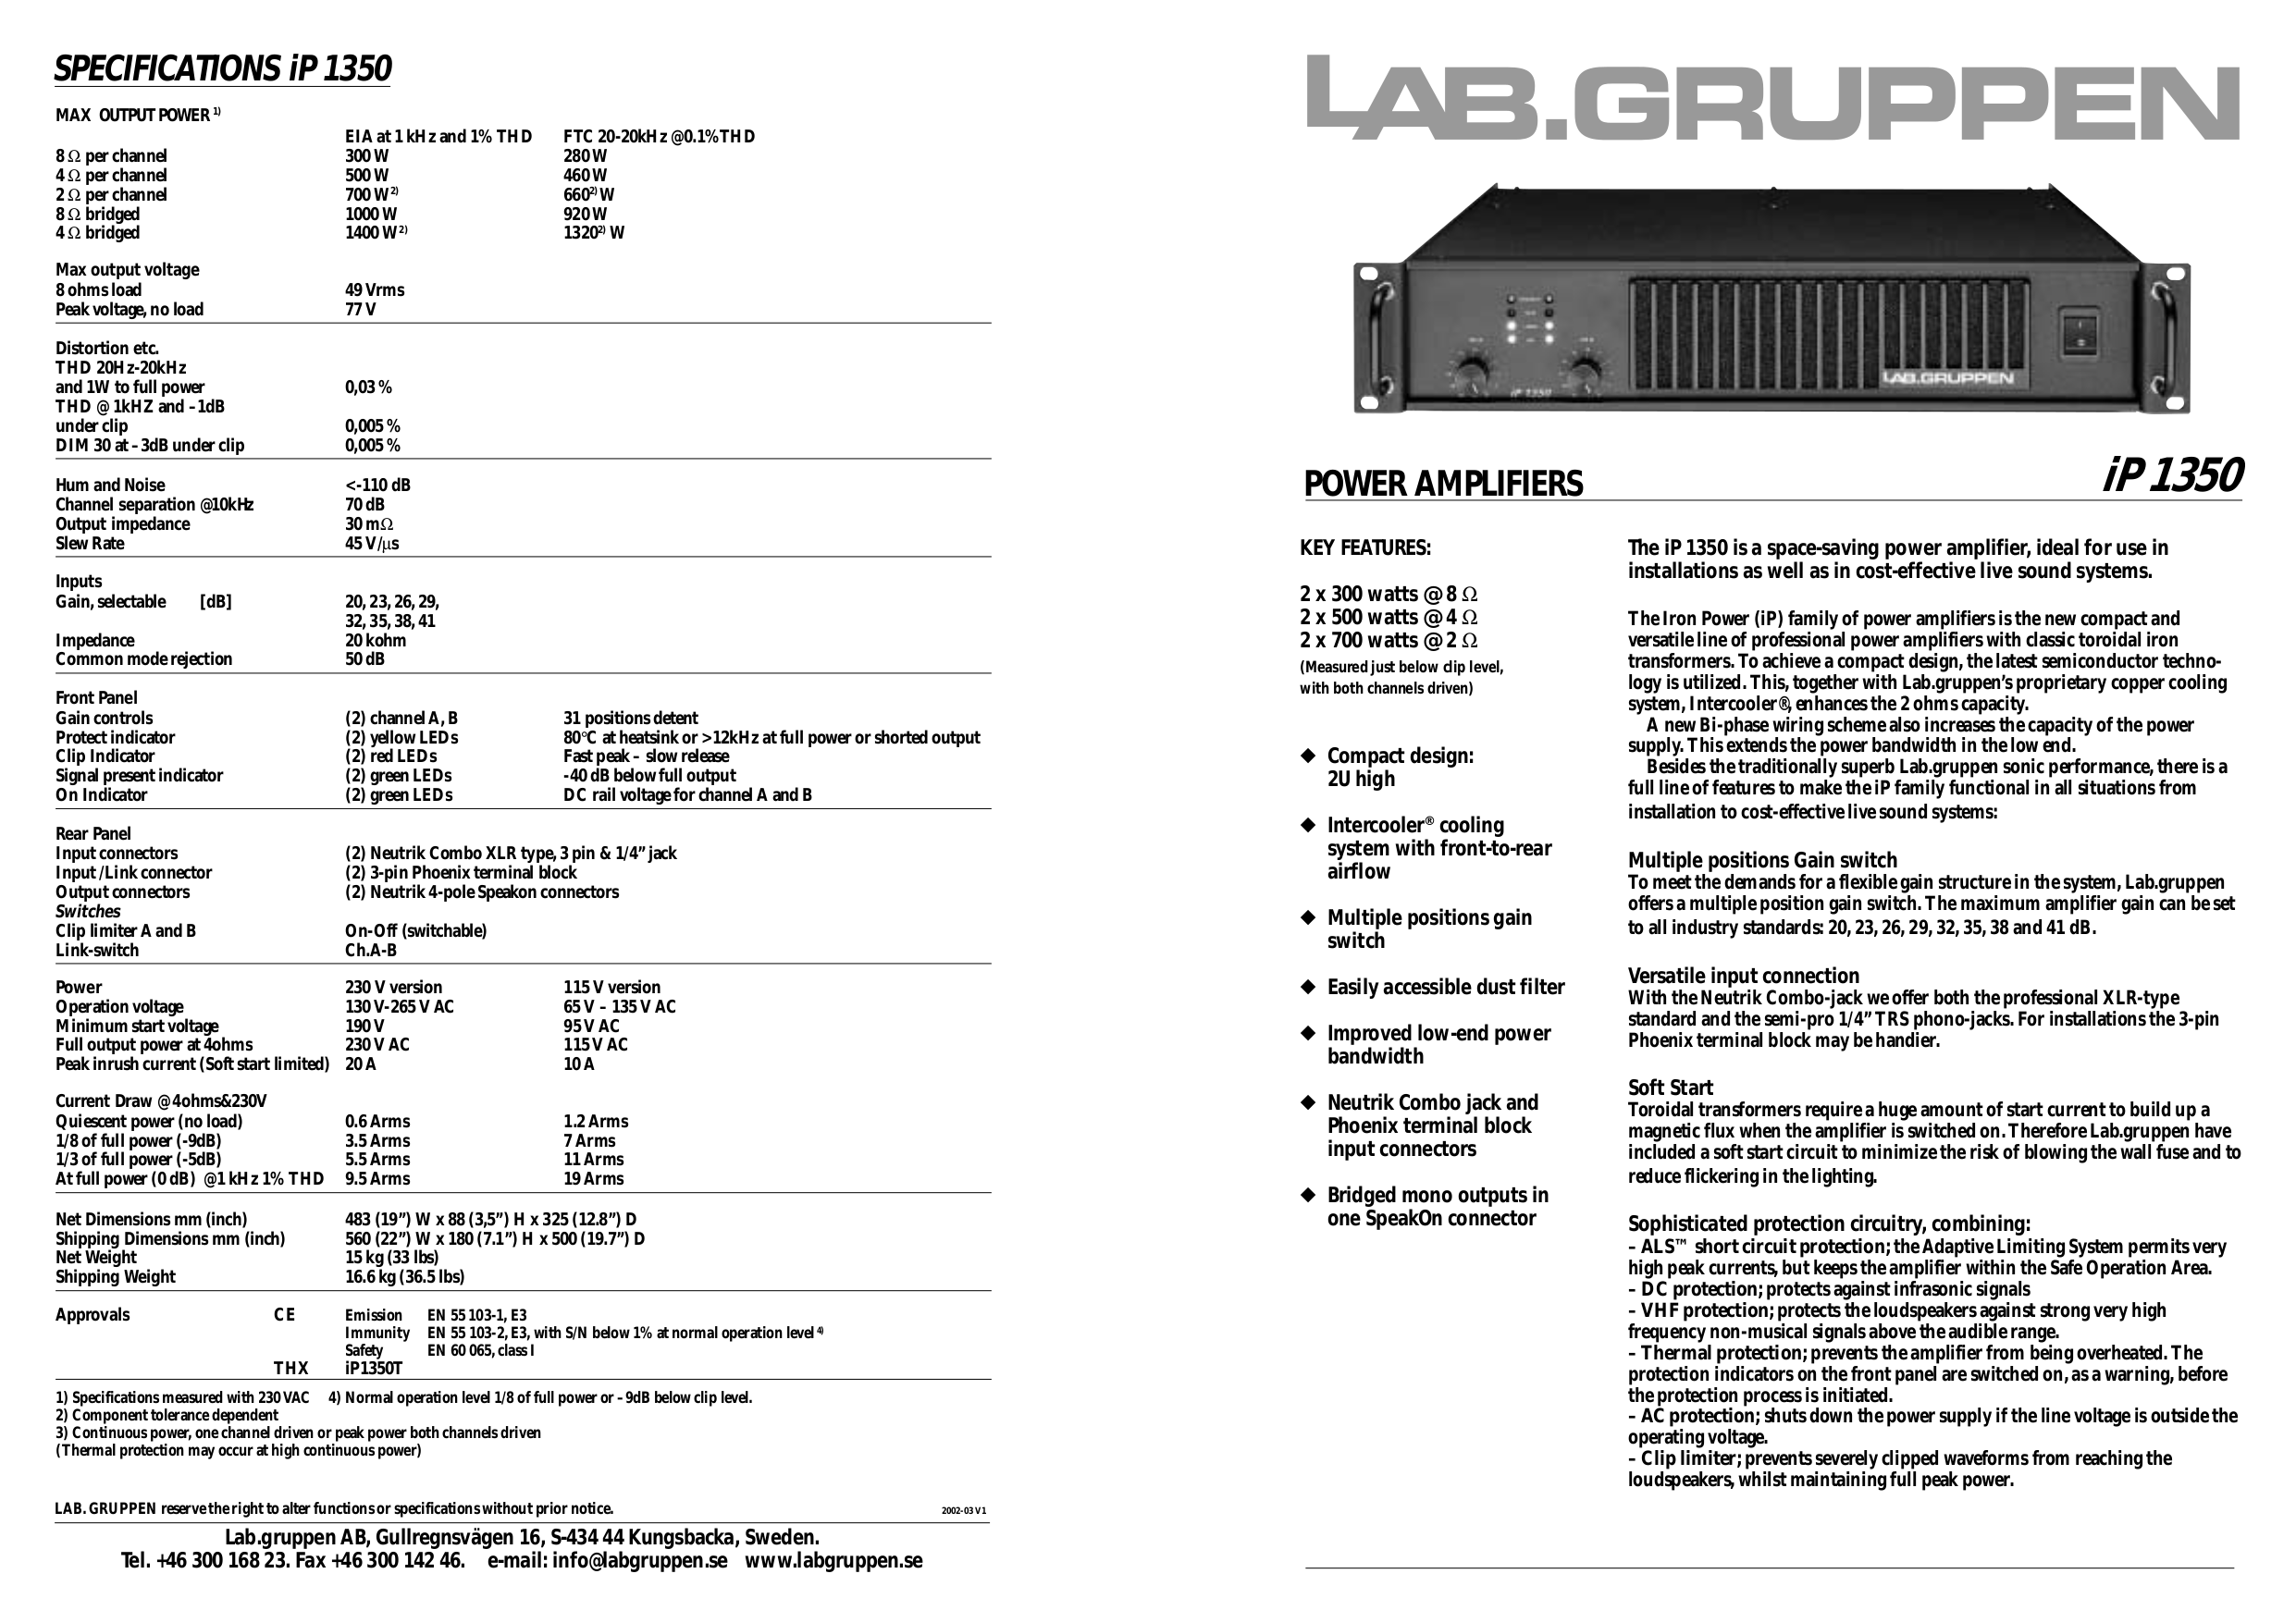 pdf for Lab.gruppen Amp iP Series IP 1350 manual